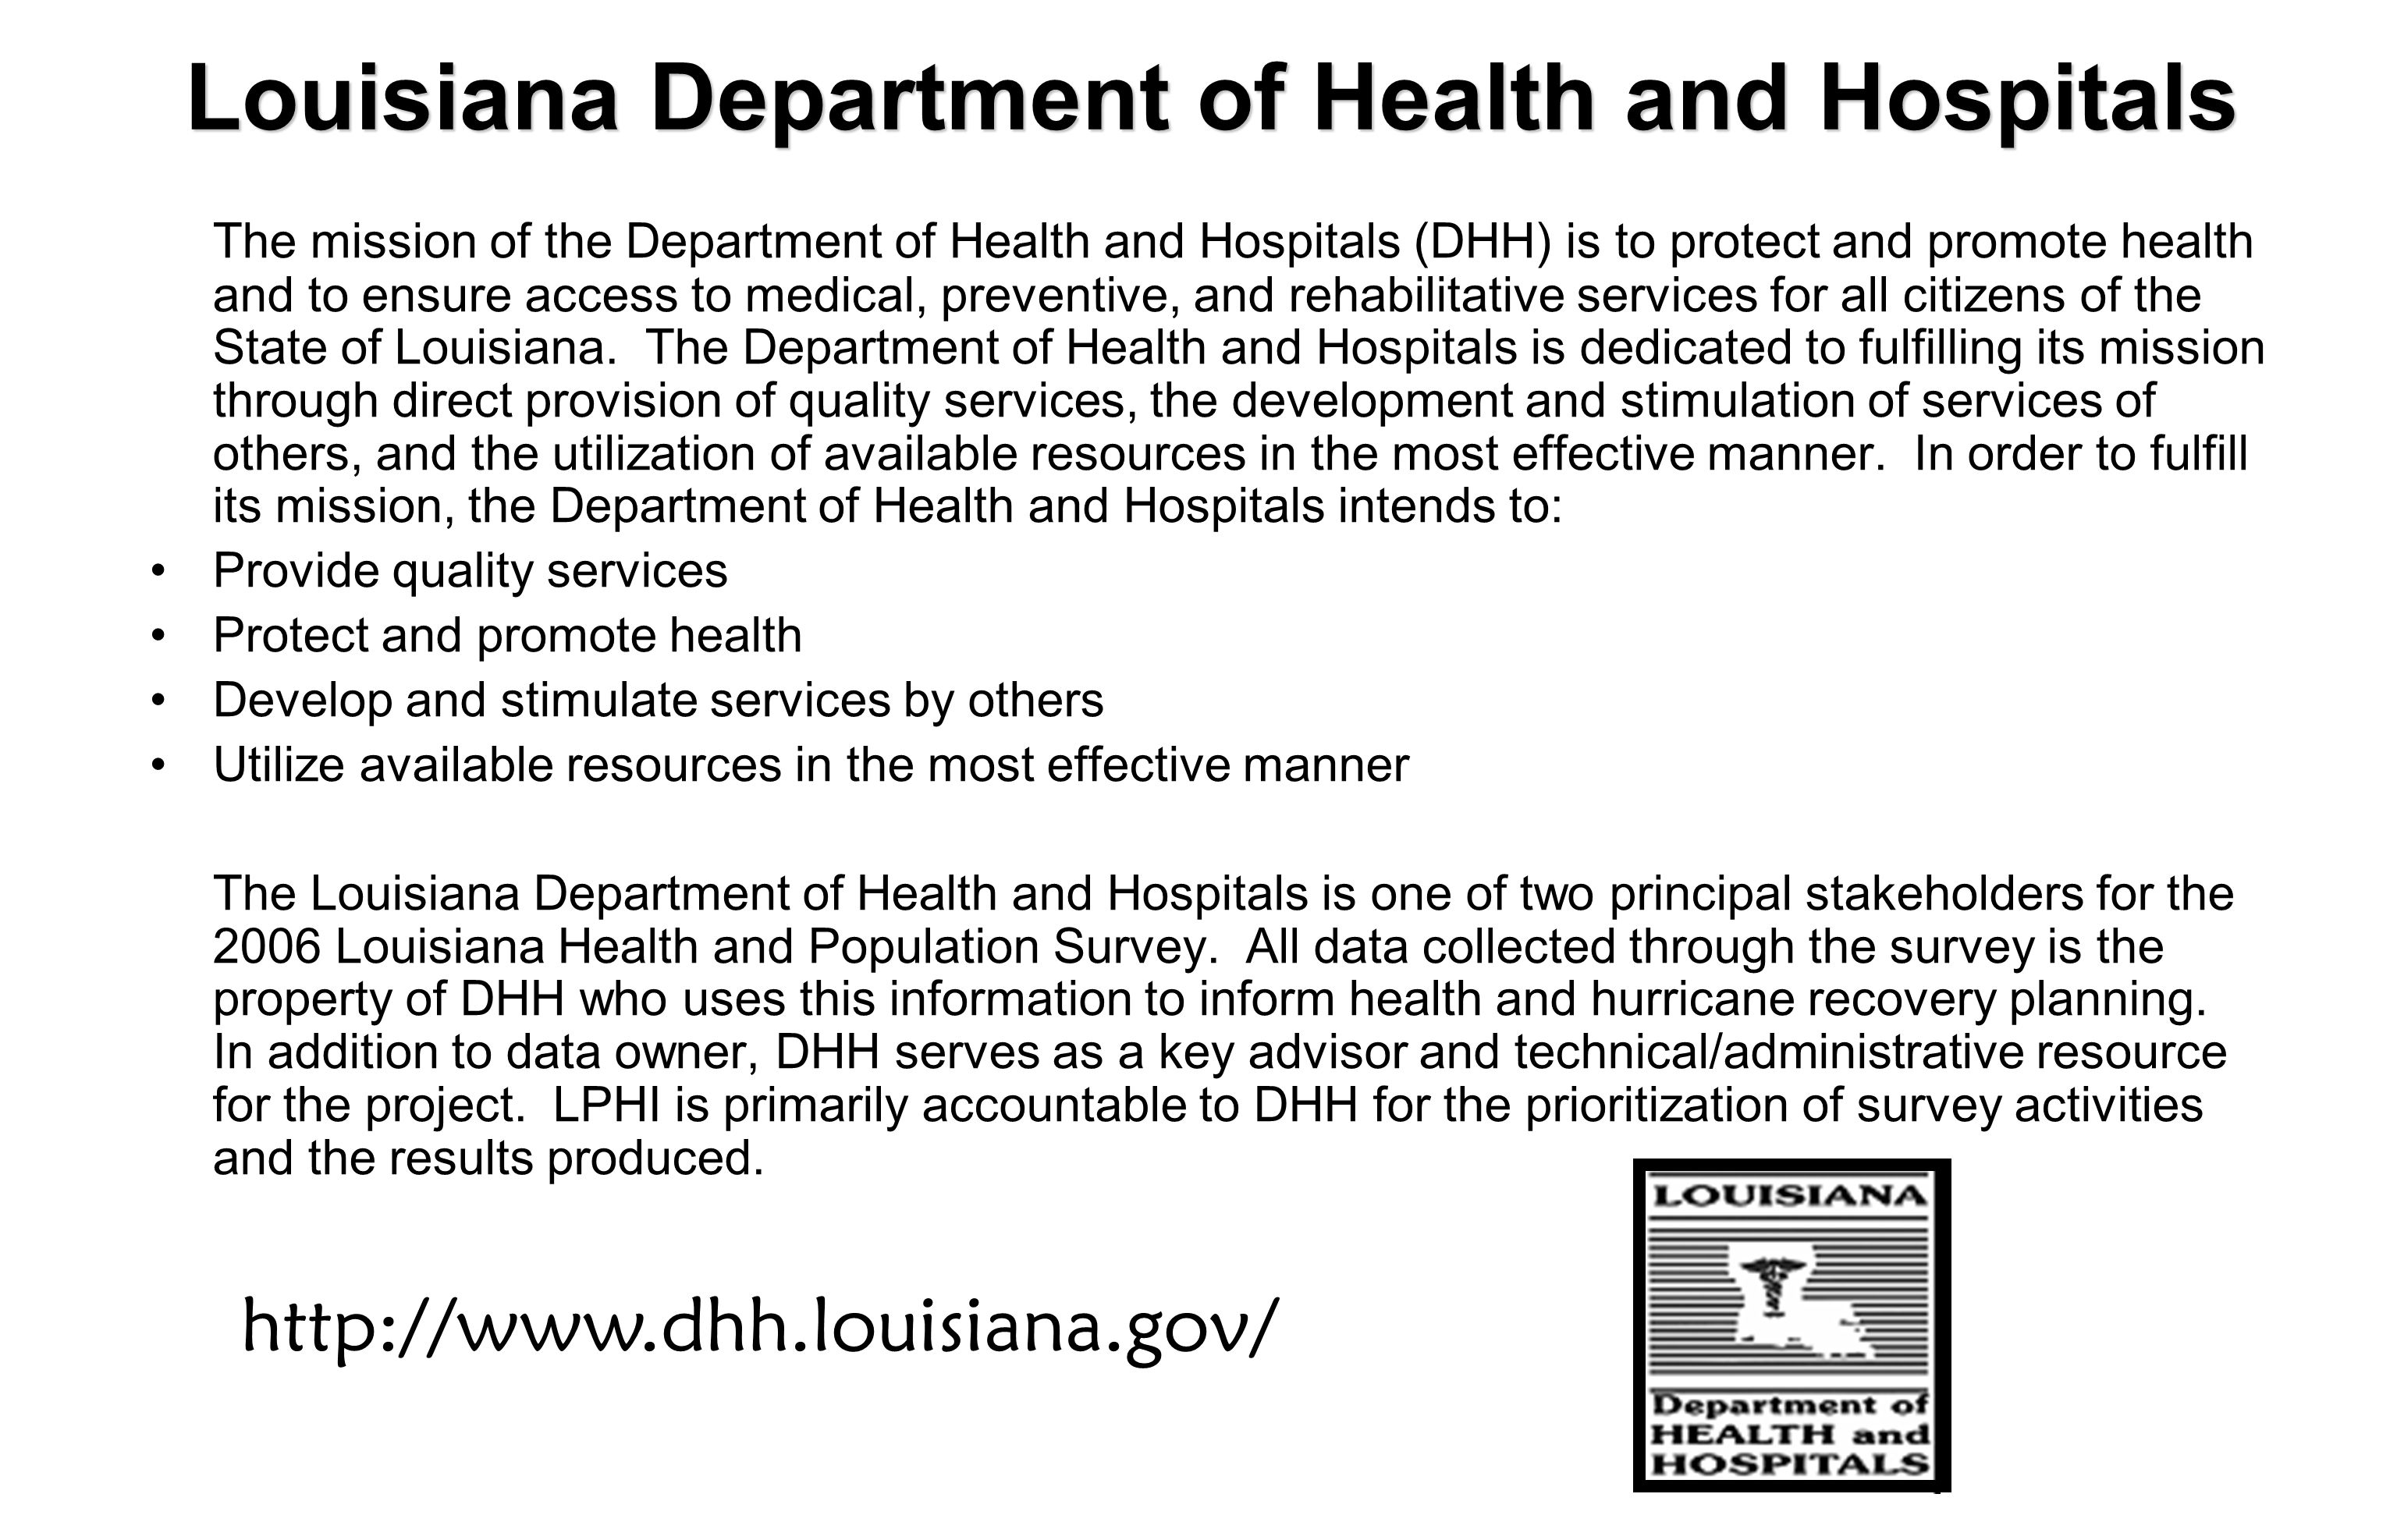 Louisiana Department of Health and Hospitals The mission of the Department of Health and Hospitals (DHH) is to protect and promote health and to ensure access to medical, preventive, and rehabilitative services for all citizens of the State of Louisiana.